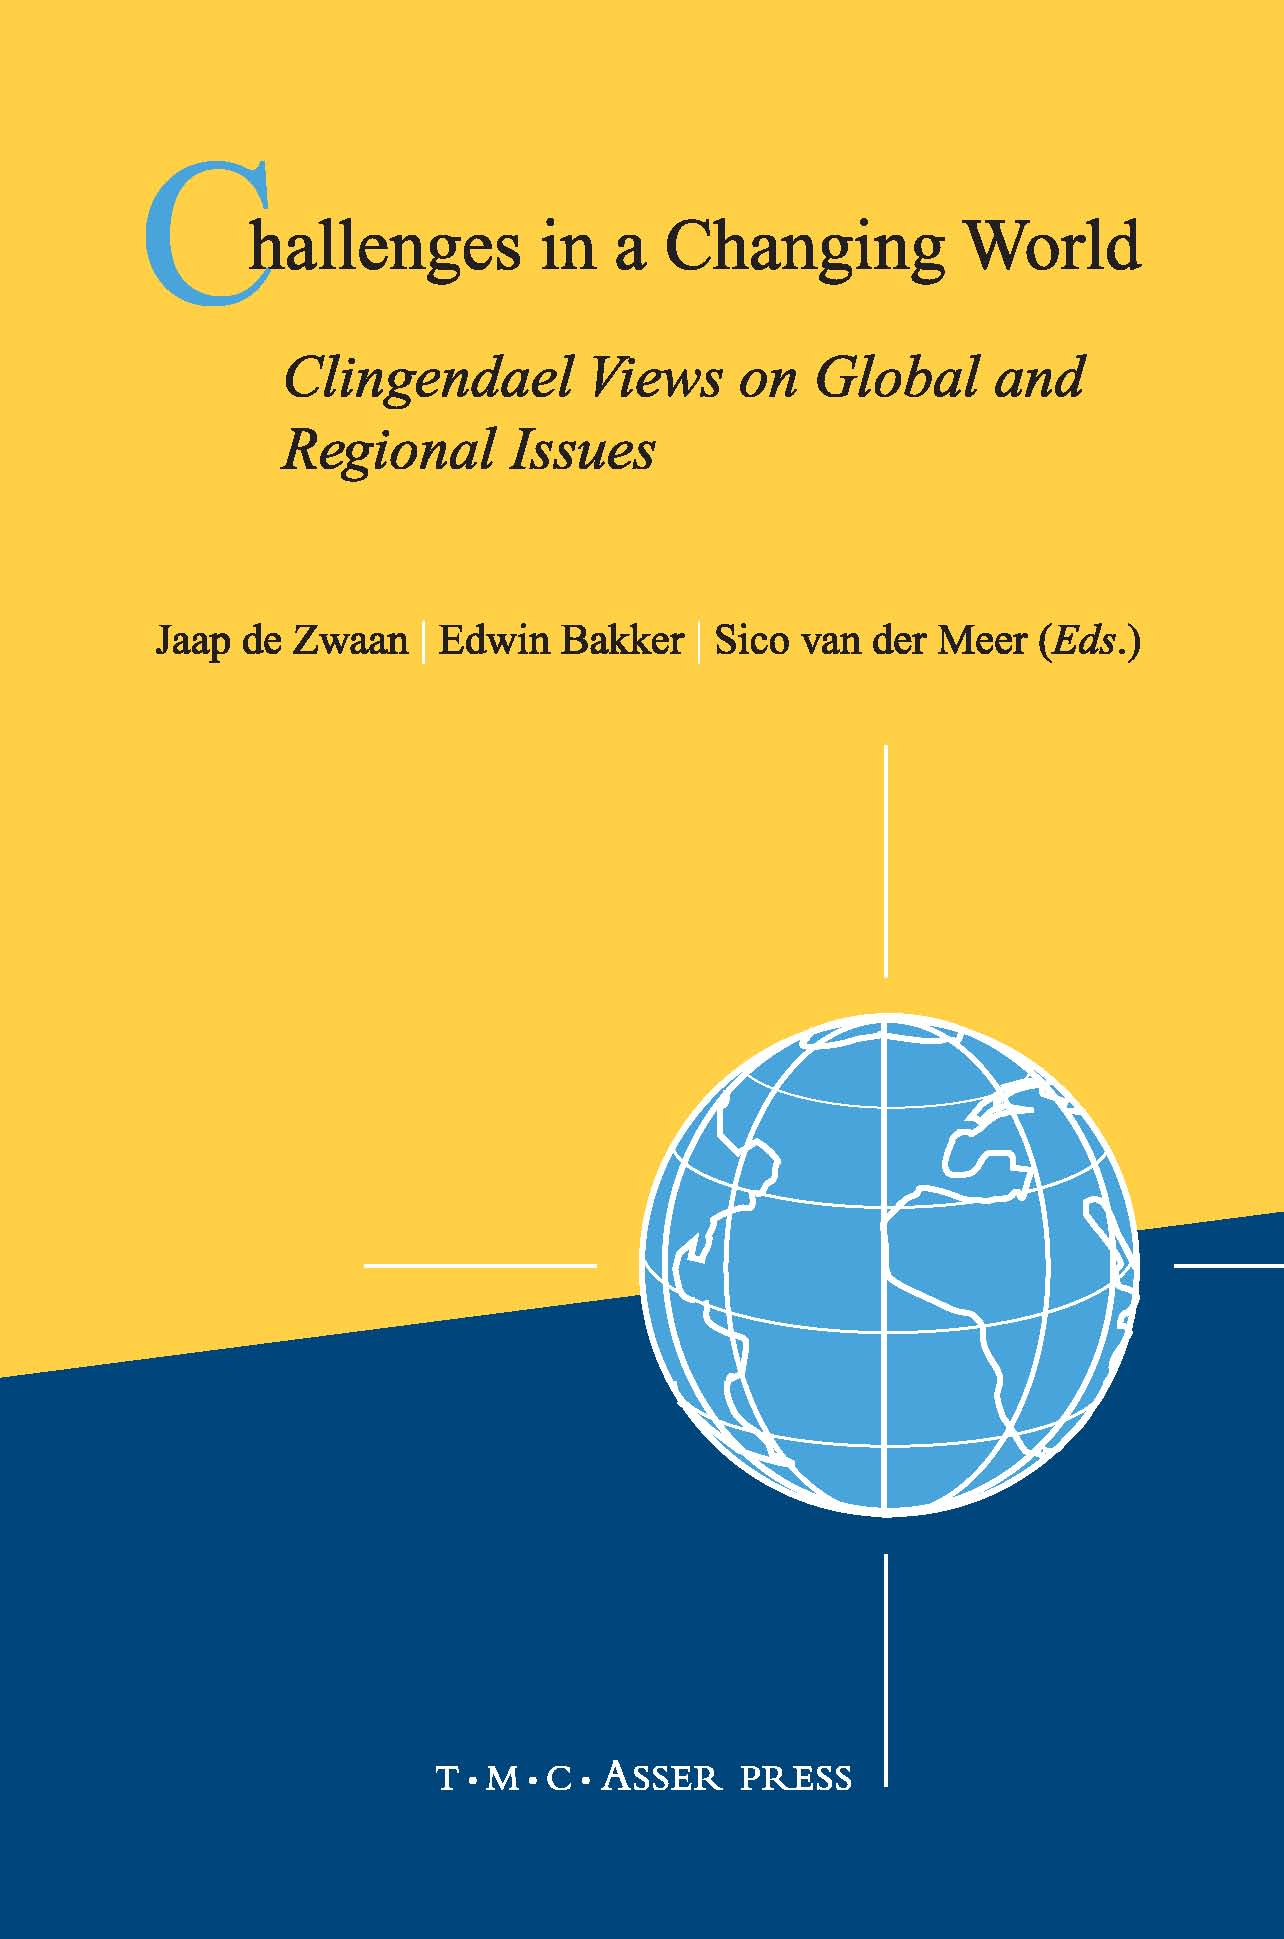 Challenges in a Changing World - Clingendael Views on Global and Regional Issues